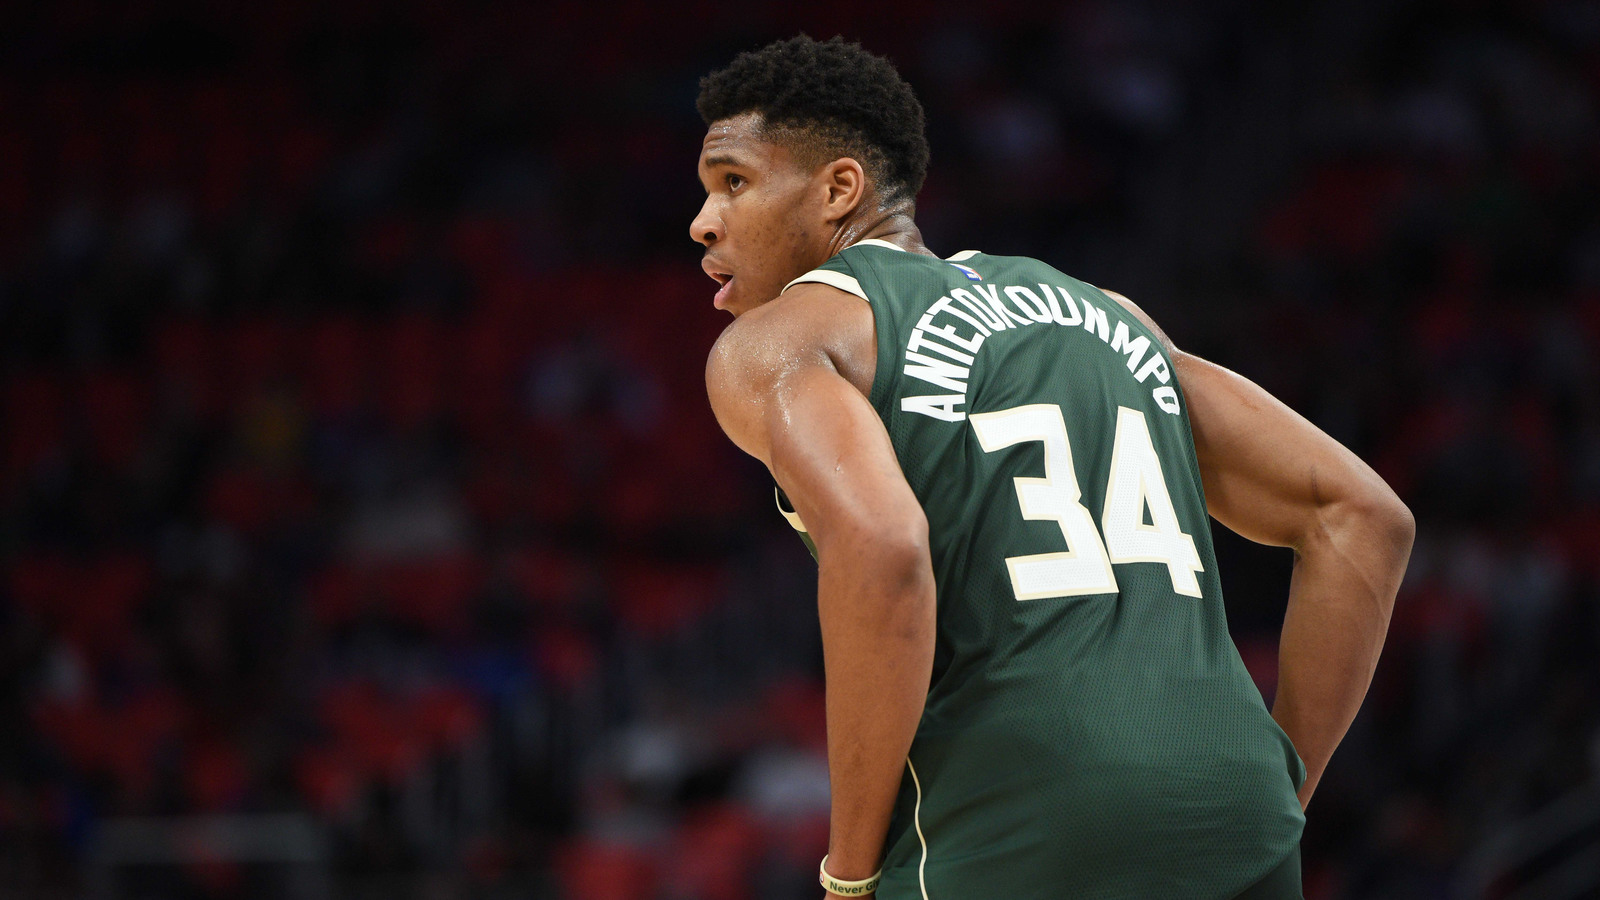 Report: Nike working on signature shoe line for Giannis Antetokounmpo | Yardbarker.com